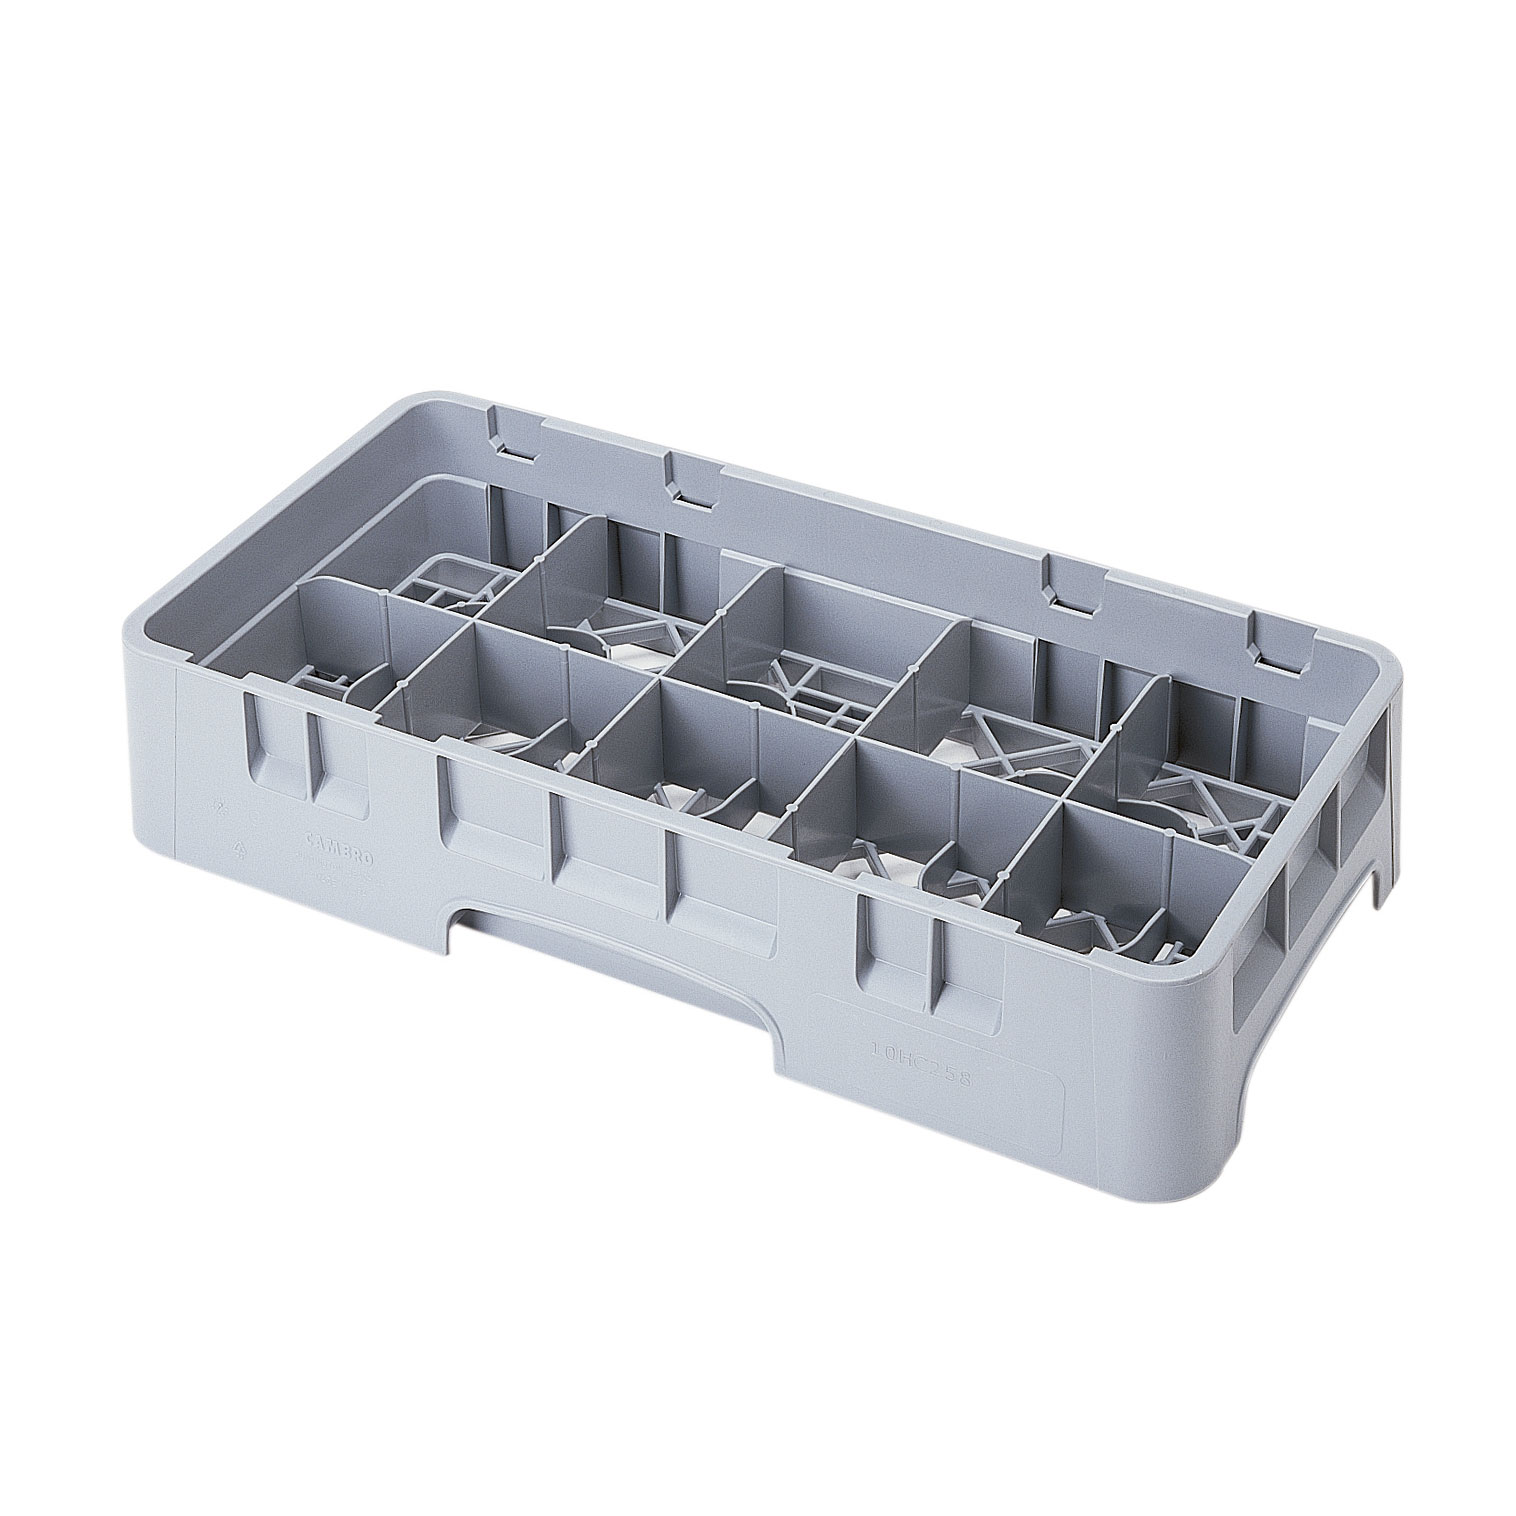 Cambro 10HC258151 dishwasher rack, cup compartment